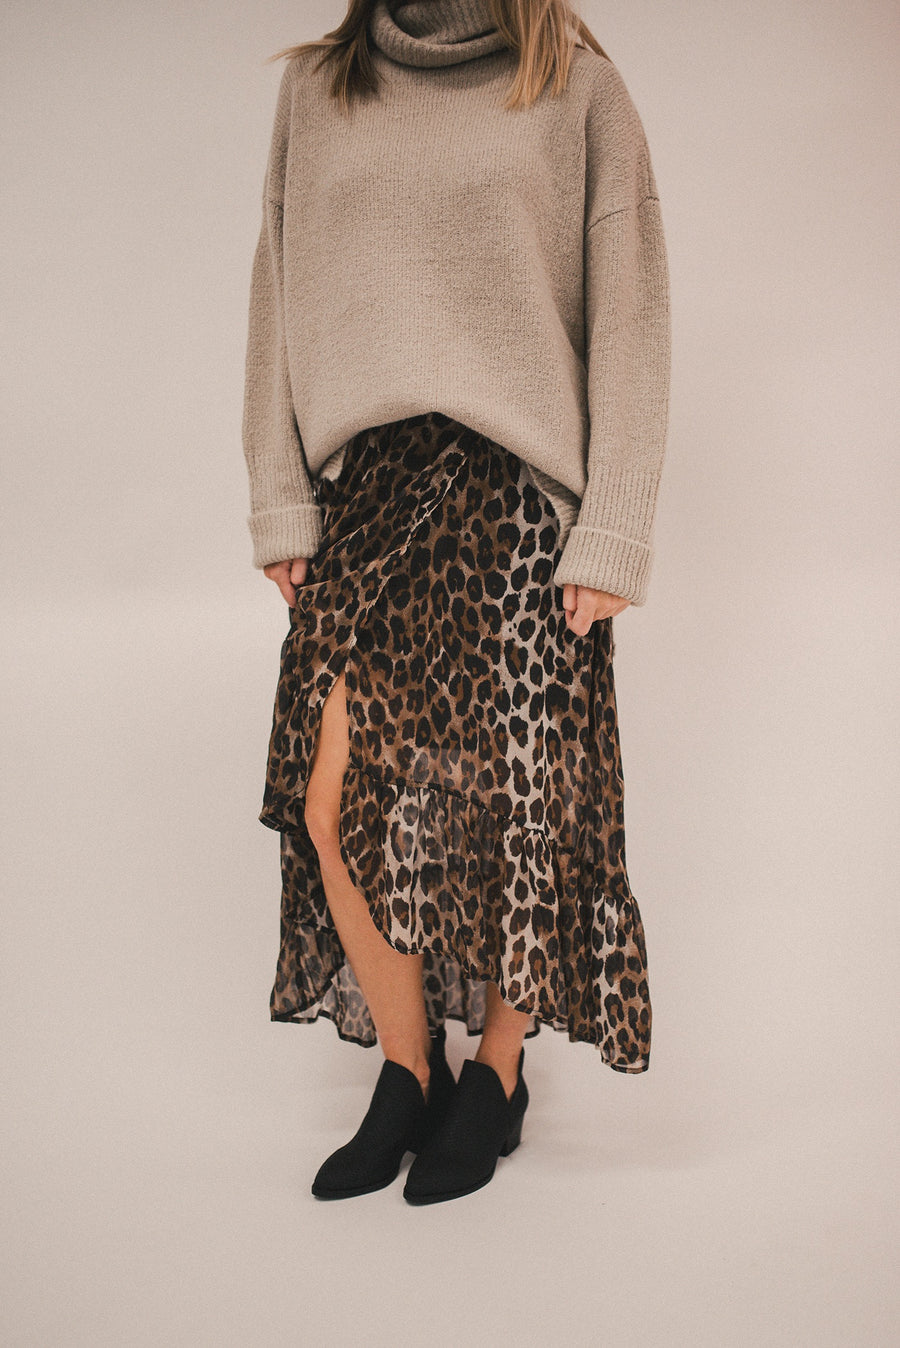 CIAO BELLA  LEOPARD CHIFFON HIGHWAISTED HI LO SKIRT